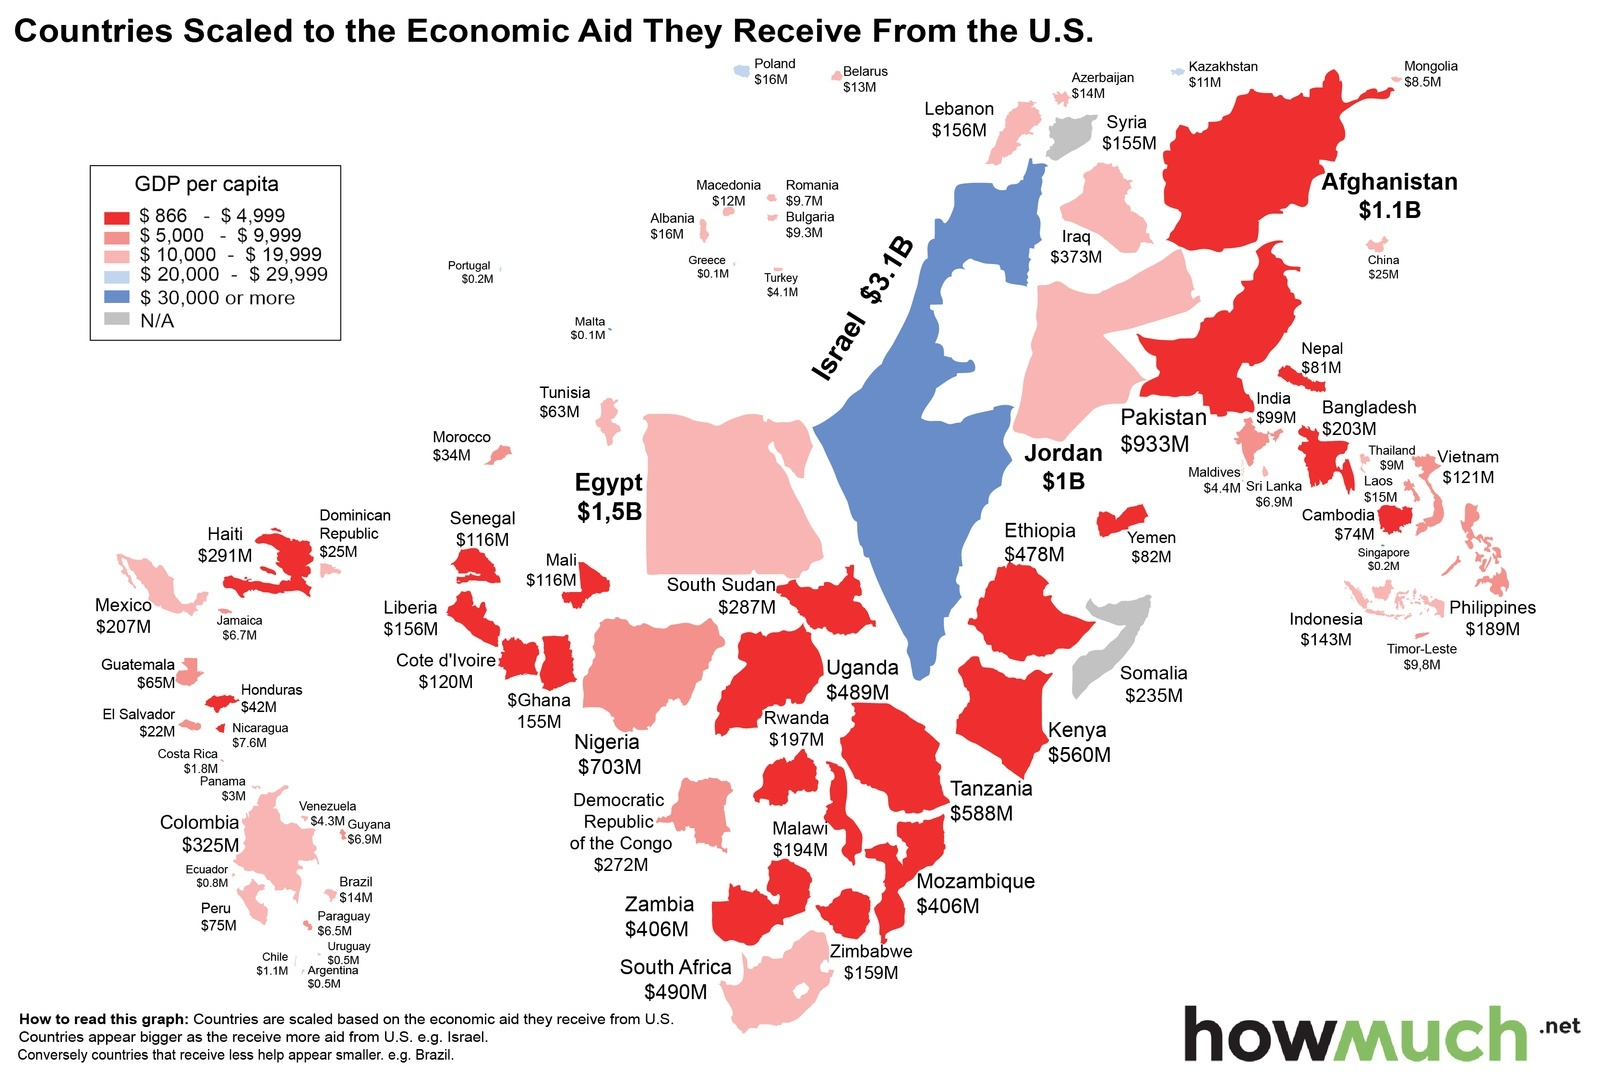 http://ritholtz.com/2015/12/countries-scaled-to-the-economic-aid-received-from-the-us/